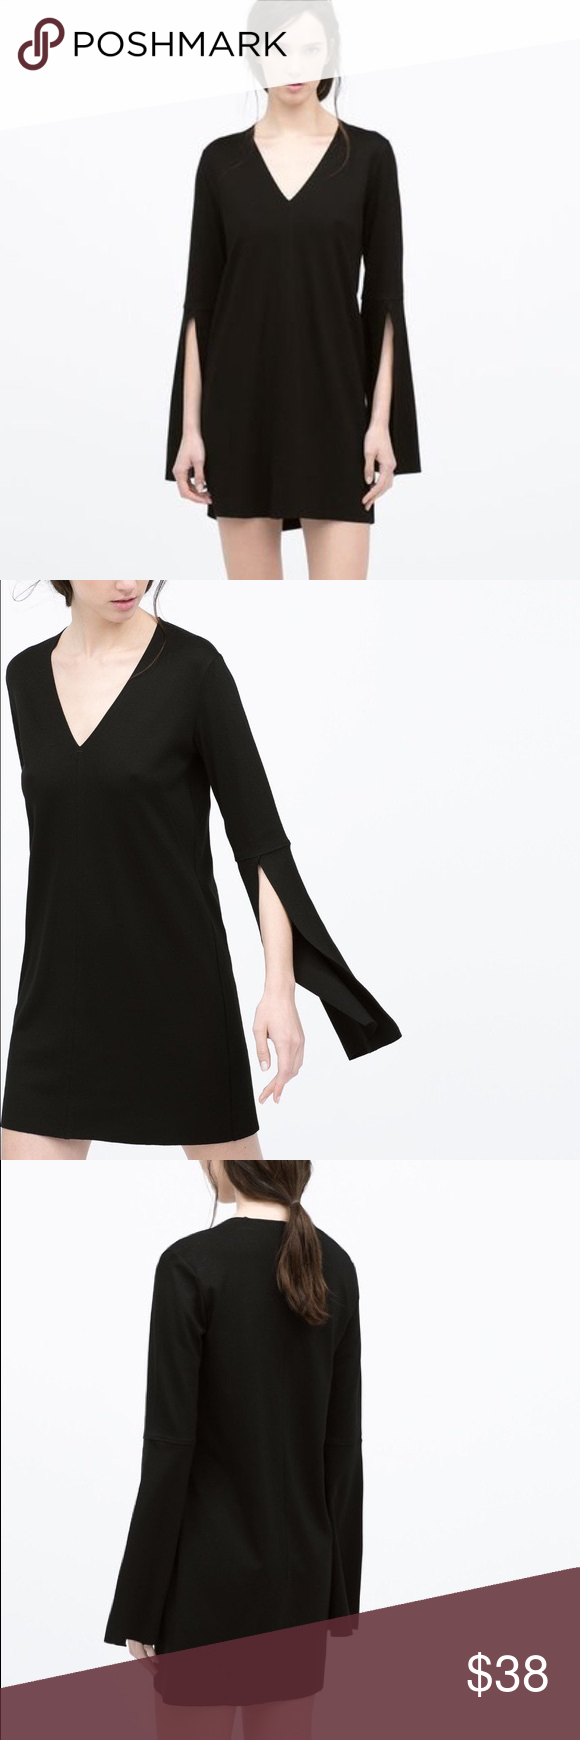 Zara bell sleeve mini dress zara black dress zara black and zara